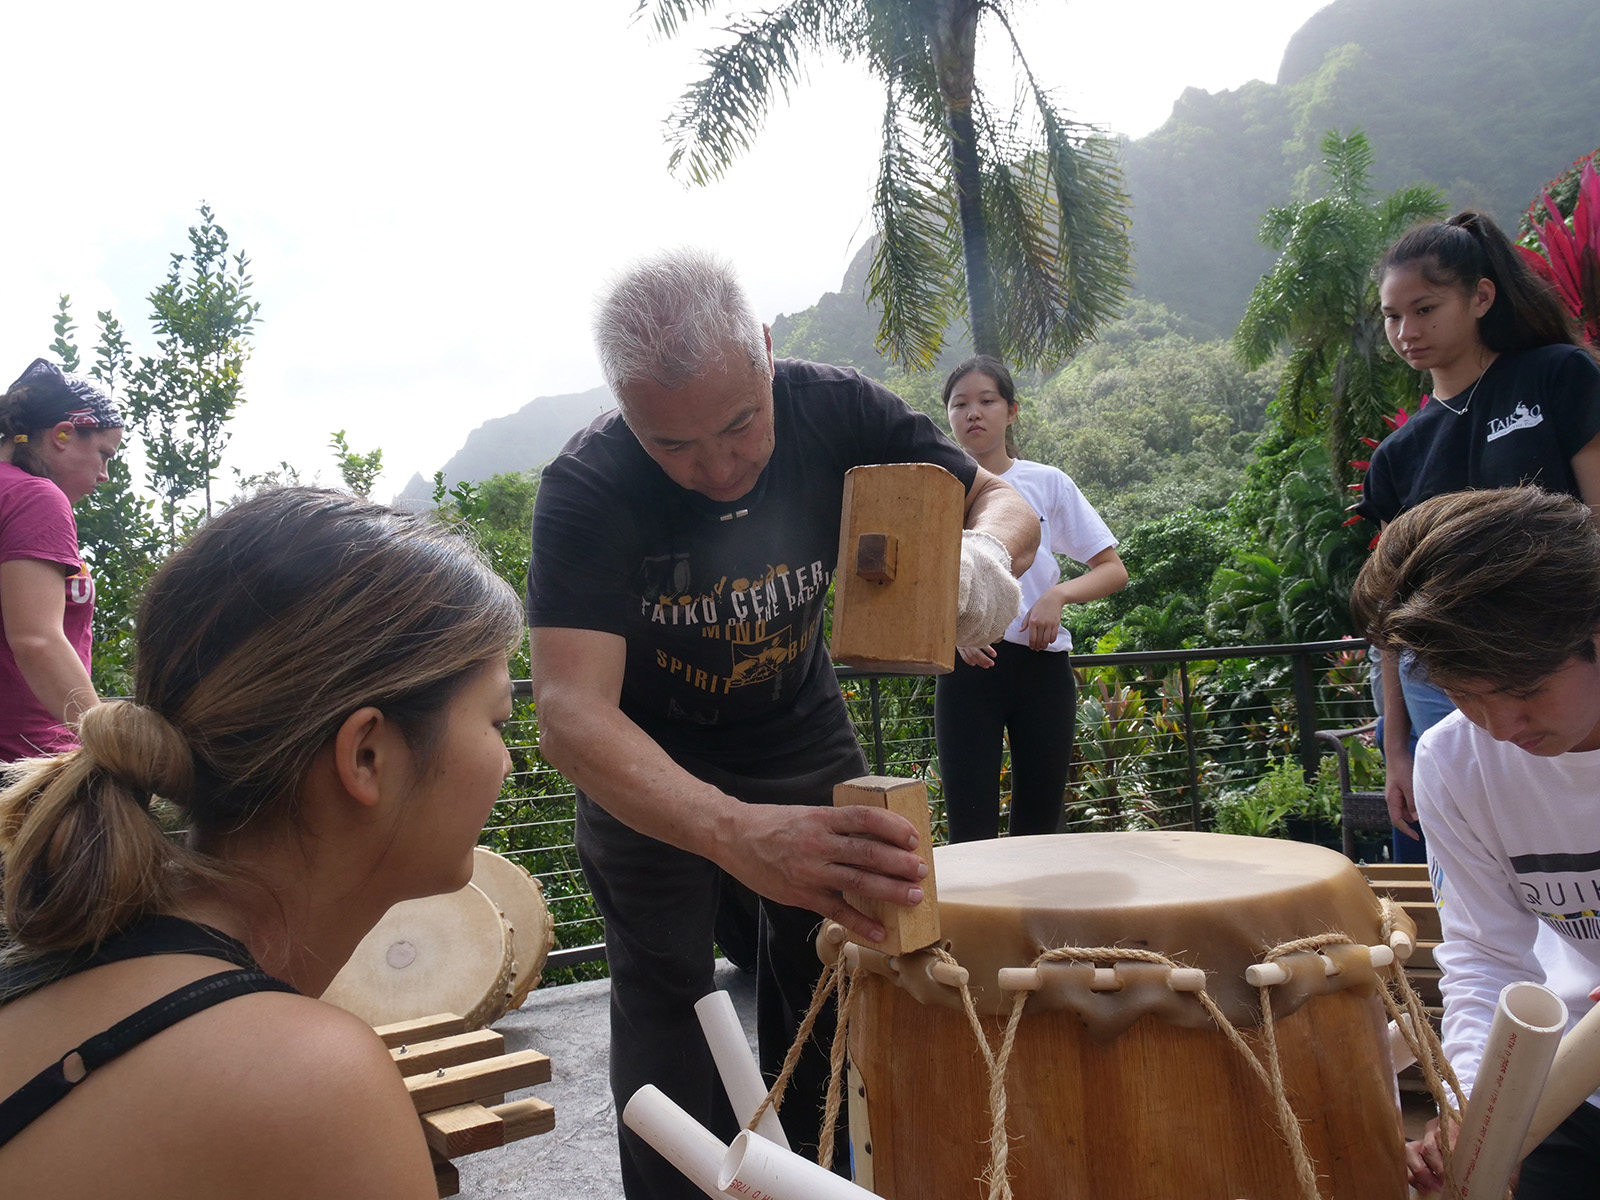 <p>Kenny Endo, center, shows onlookers how to pound down the edges of a cowhide to make sure all sides are even as students, from left, Josie Hung, Elle, Nicole and Curren watch and help to stretch the skin across the top of a taiko drum.</p>